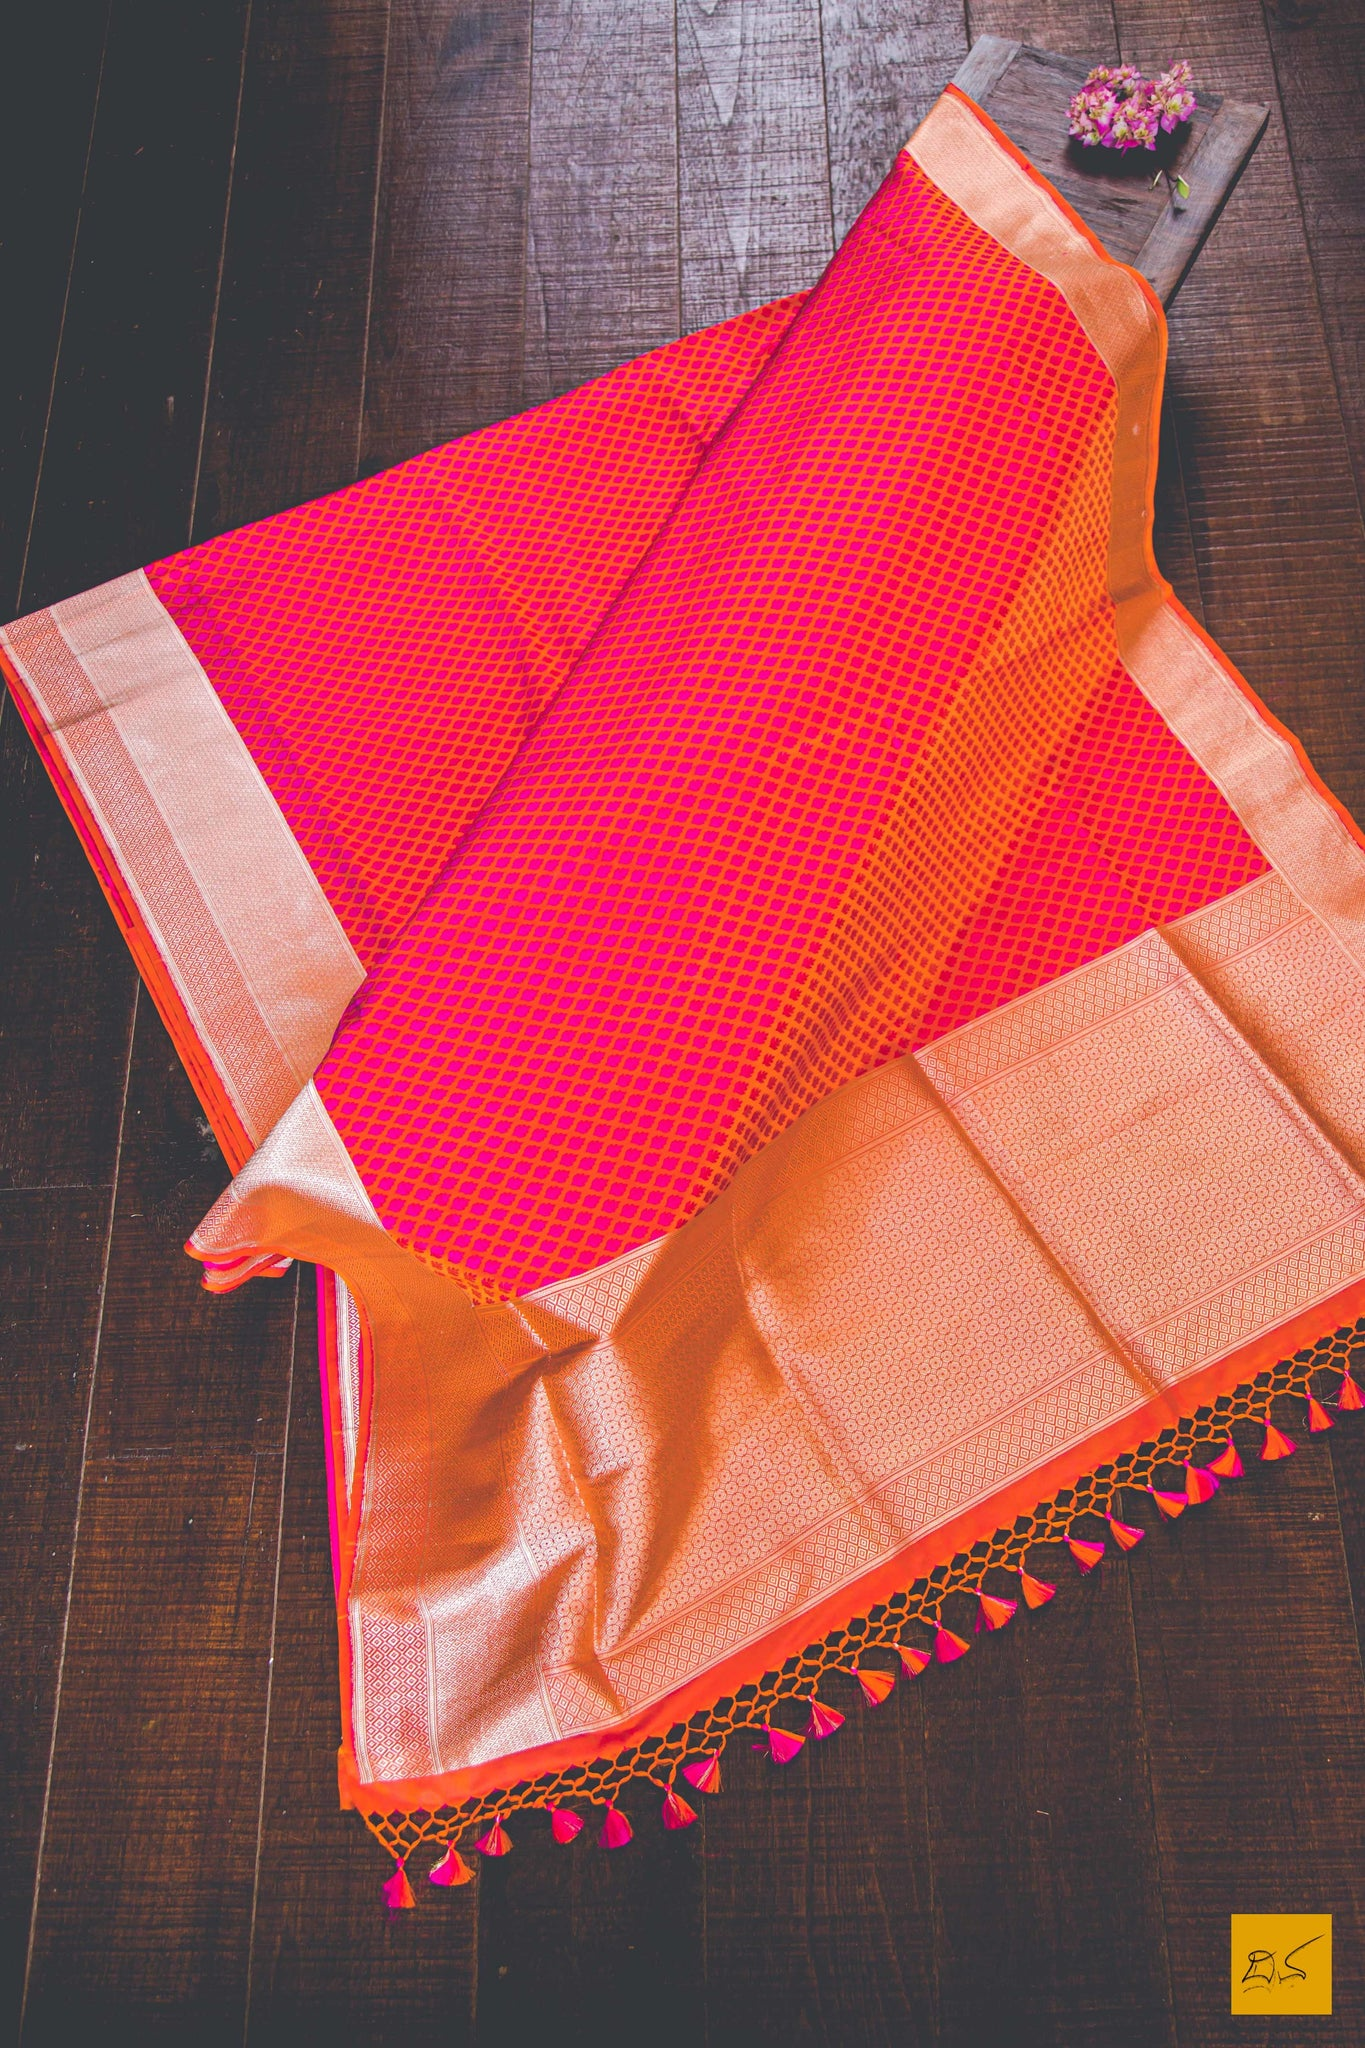 A beautiful katan silk banarasi sari with a pink body and a classic jamawar tanchoi crafted in this finest weaving style. New trend of Banarasi Saree designs, Banarasi Saree for artists, art lovers, architects, saree lovers, Saree connoisseurs, musicians, dancers, doctors, Banarasi Katan silk saree, indian saree images, latest sarees with price, only saree images, new Banarasi saree design.